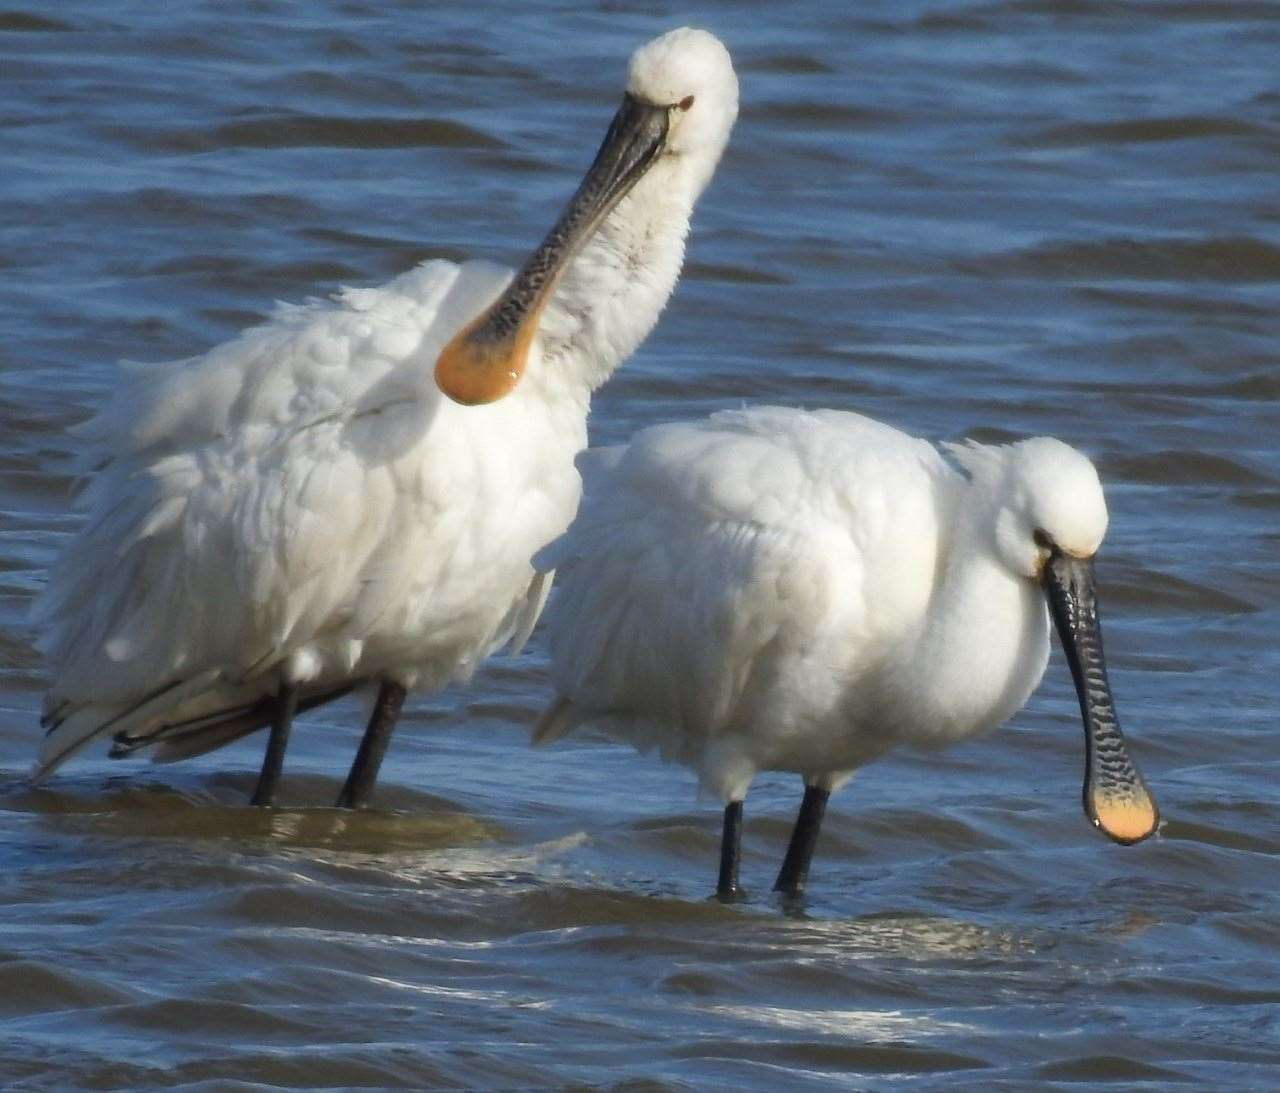 19th March 2021: Peter Simpson spotted these spoonbills at Normandy Lagoon near Salterns Sailing Club, Lymington